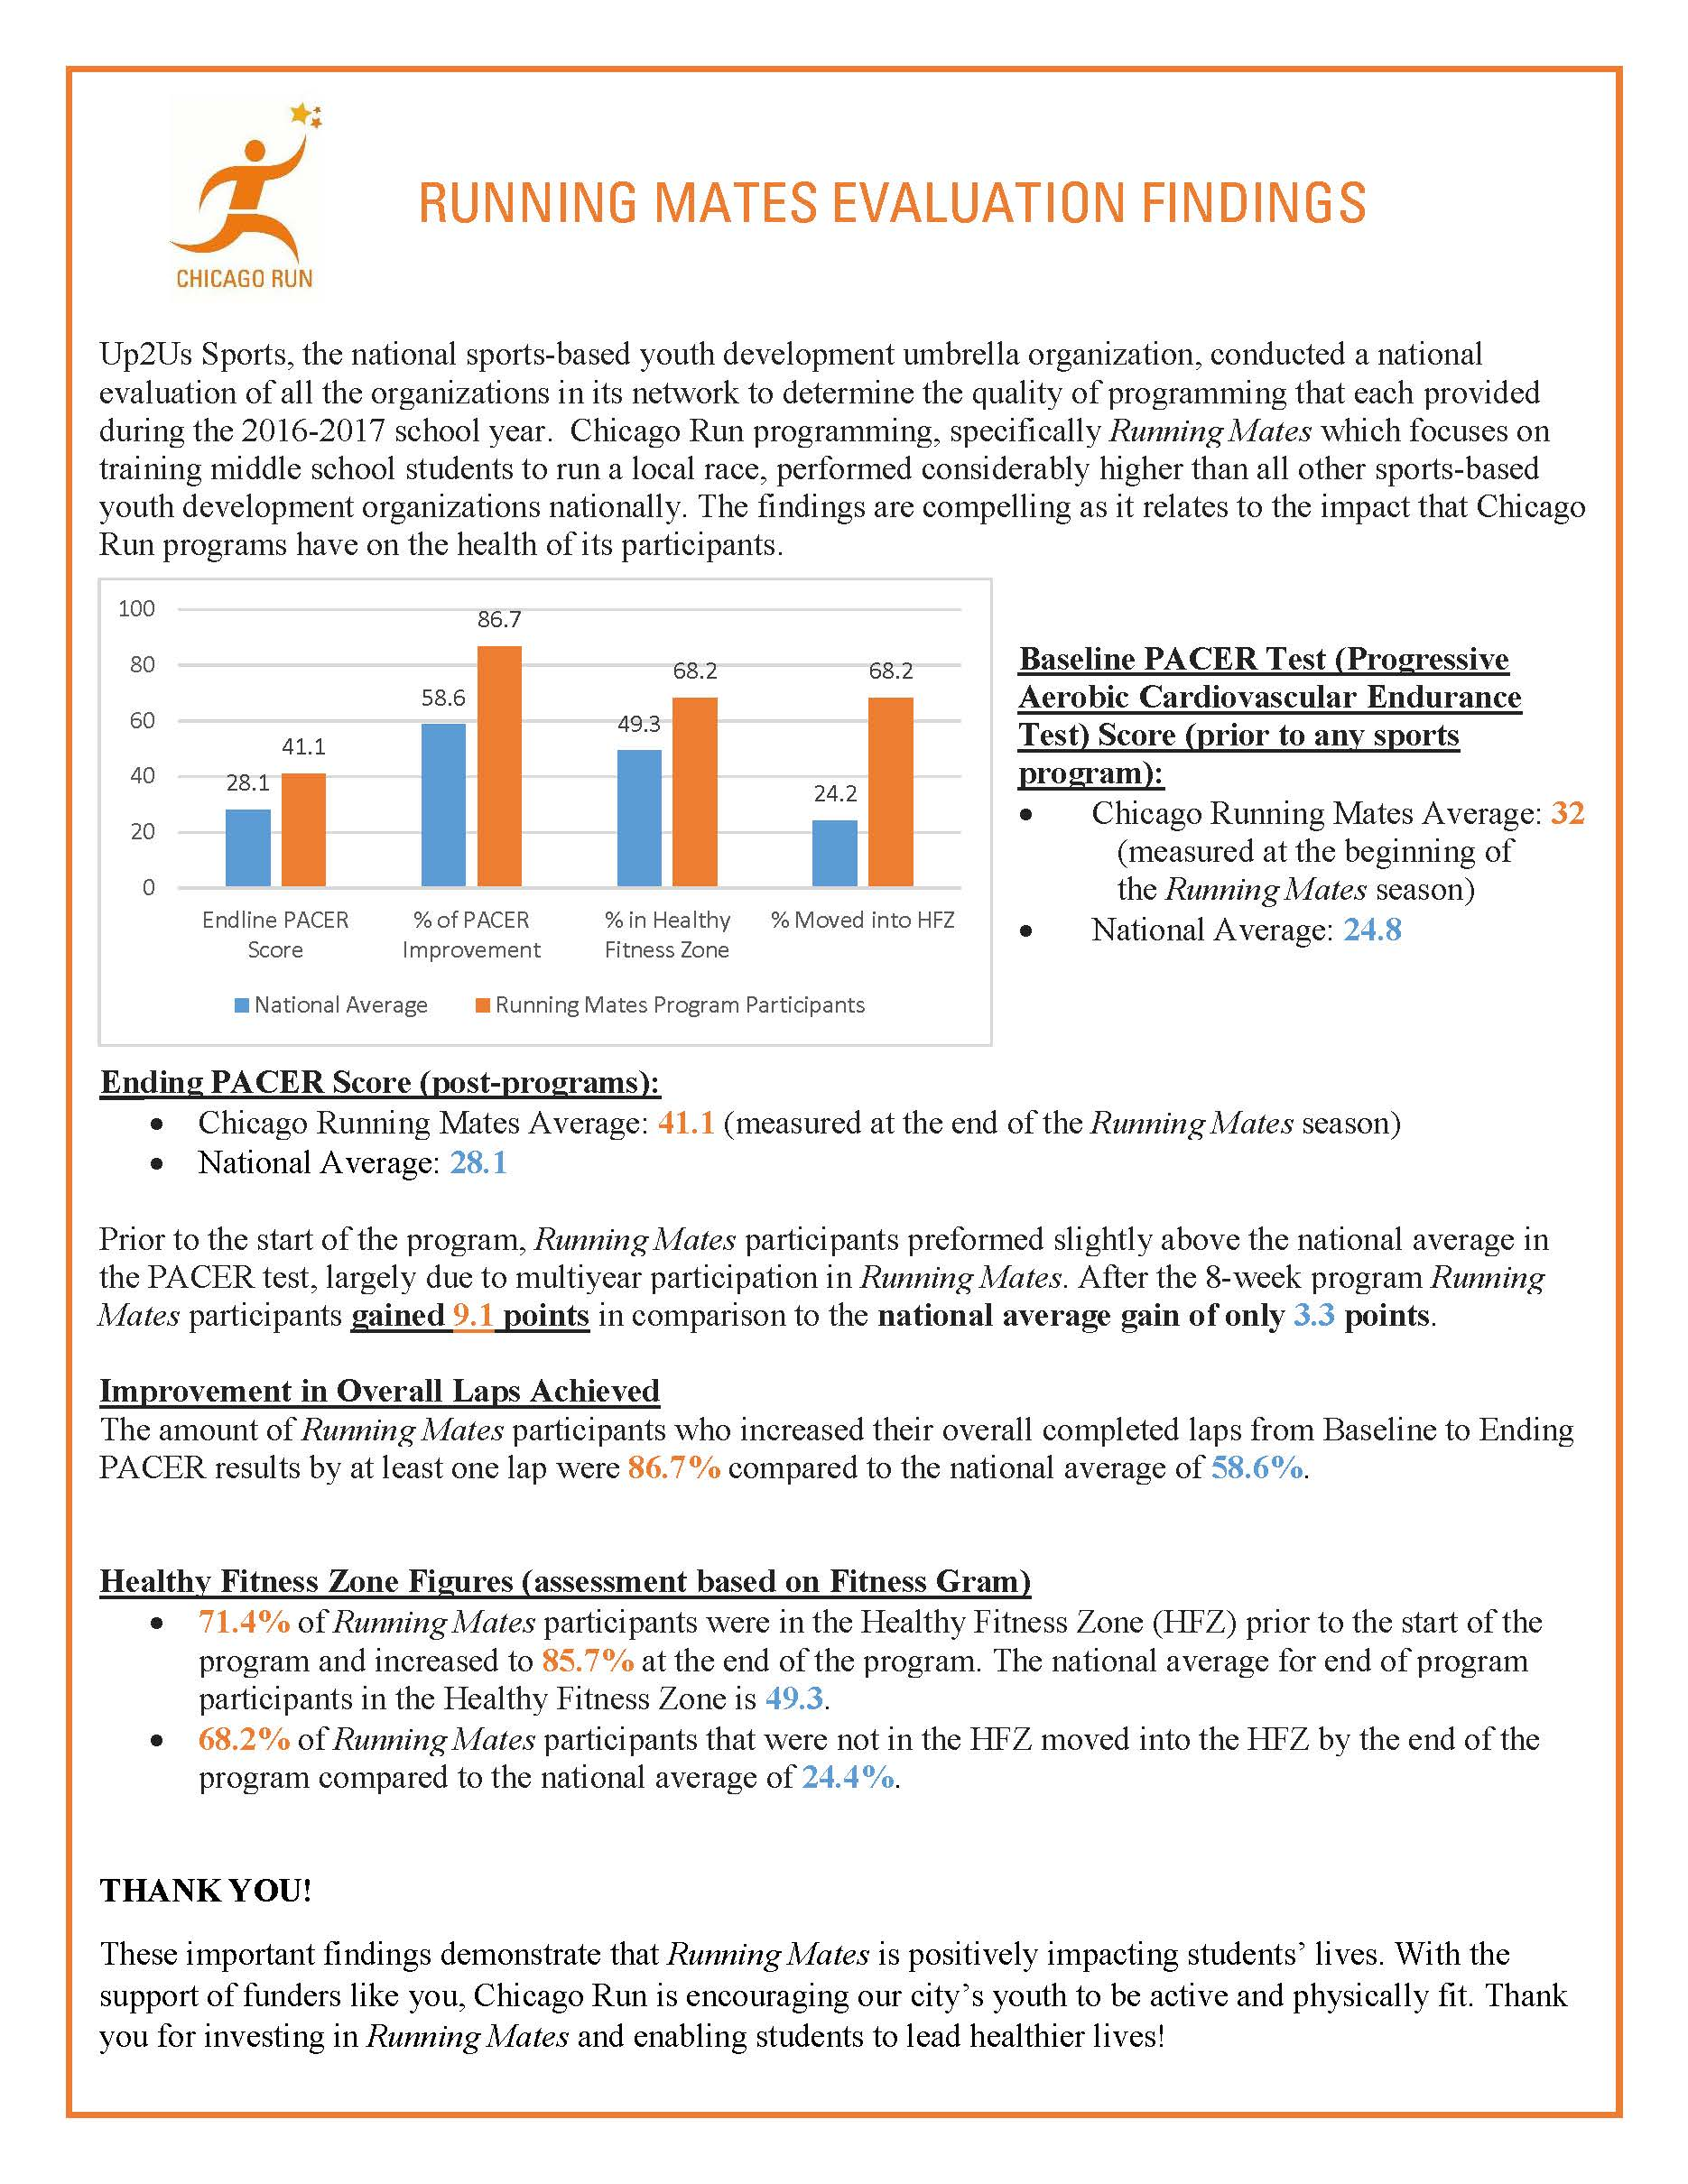 Running Mates and Up2Us 2018 evaluation one-pager.jpg